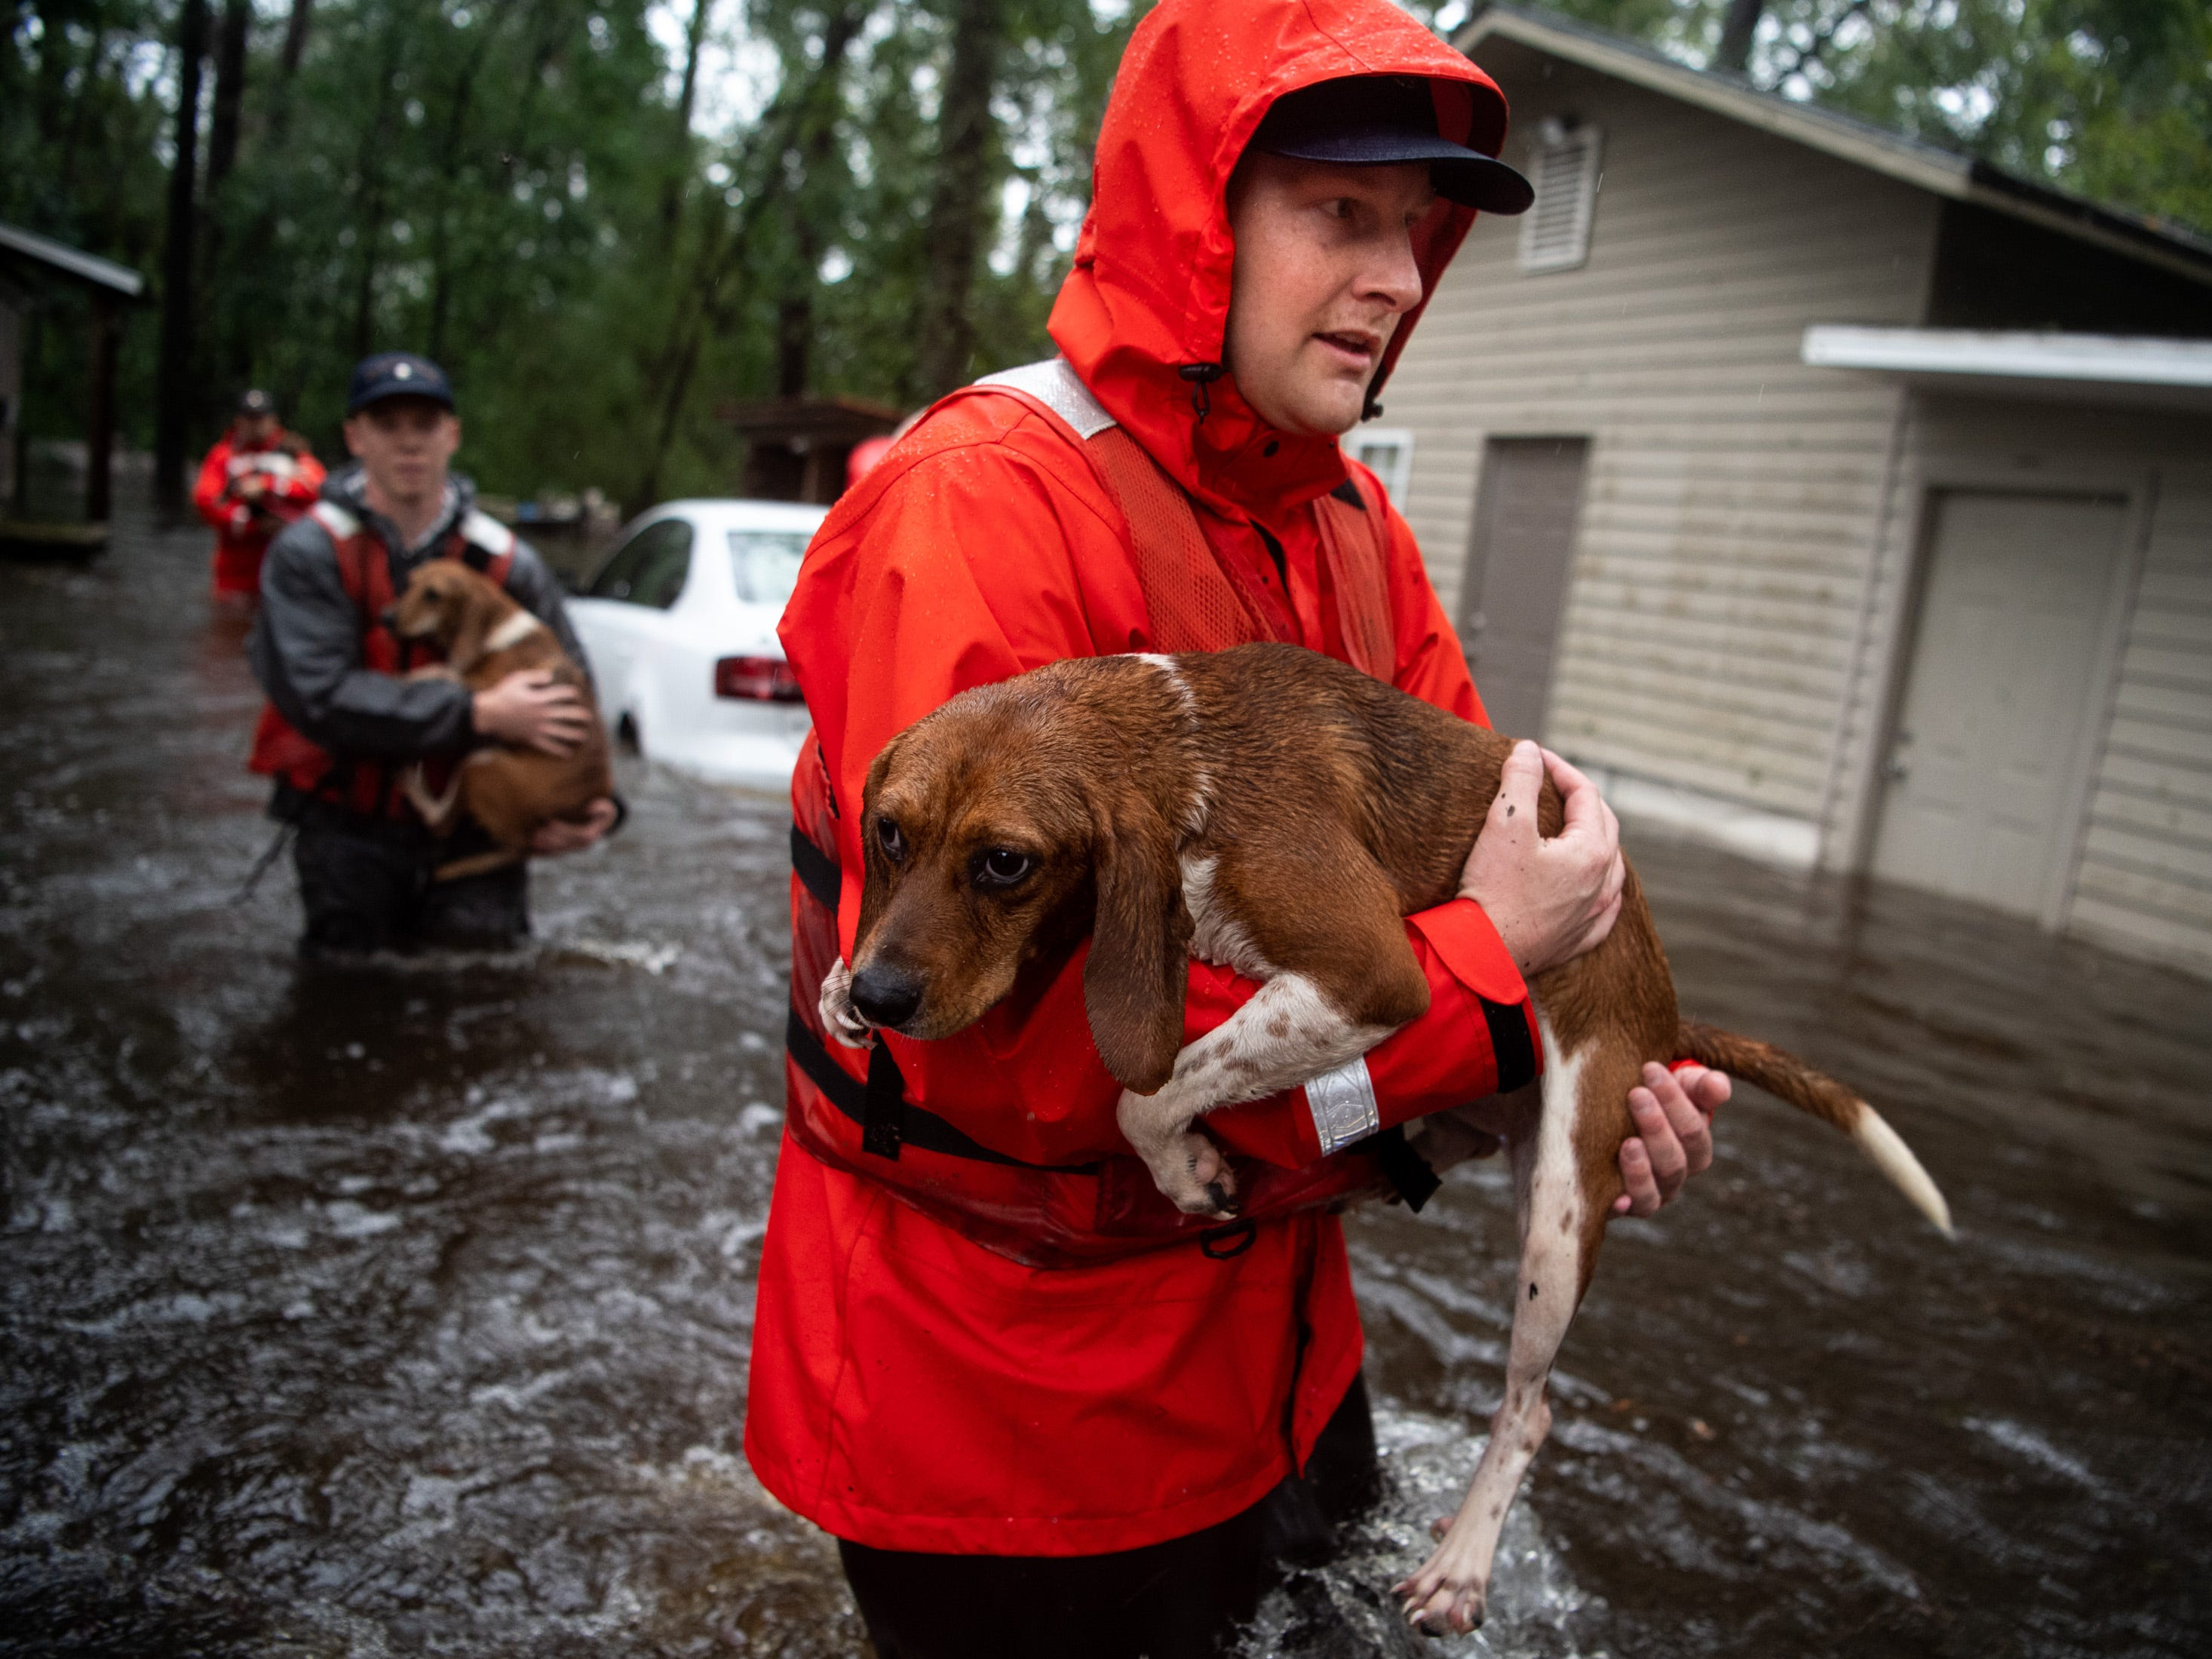 Coast Guardsman Tyler Elliott, from Louisville, Ky., helps rescue one of 14 dogs, including 10 beagles, from a flooded home in Columbus County, N.C., Sunday, Sept. 16, 2018.